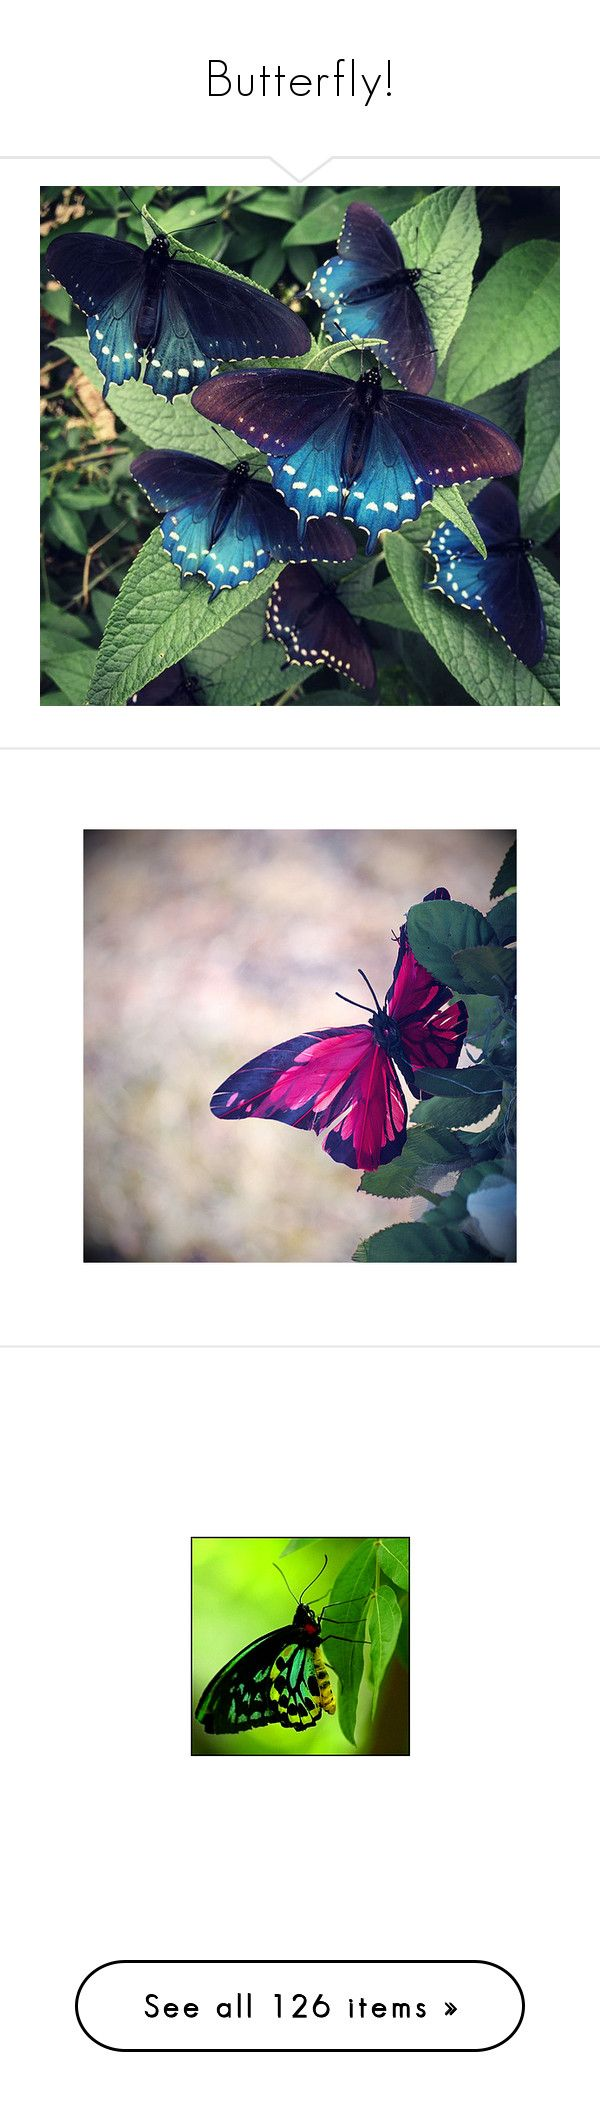 """Butterfly!"" by sarahguo ❤ liked on Polyvore featuring backgrounds, butterflies, dragonflies, green, animals, fondos, home, home decor, wall art and blossom wall art"